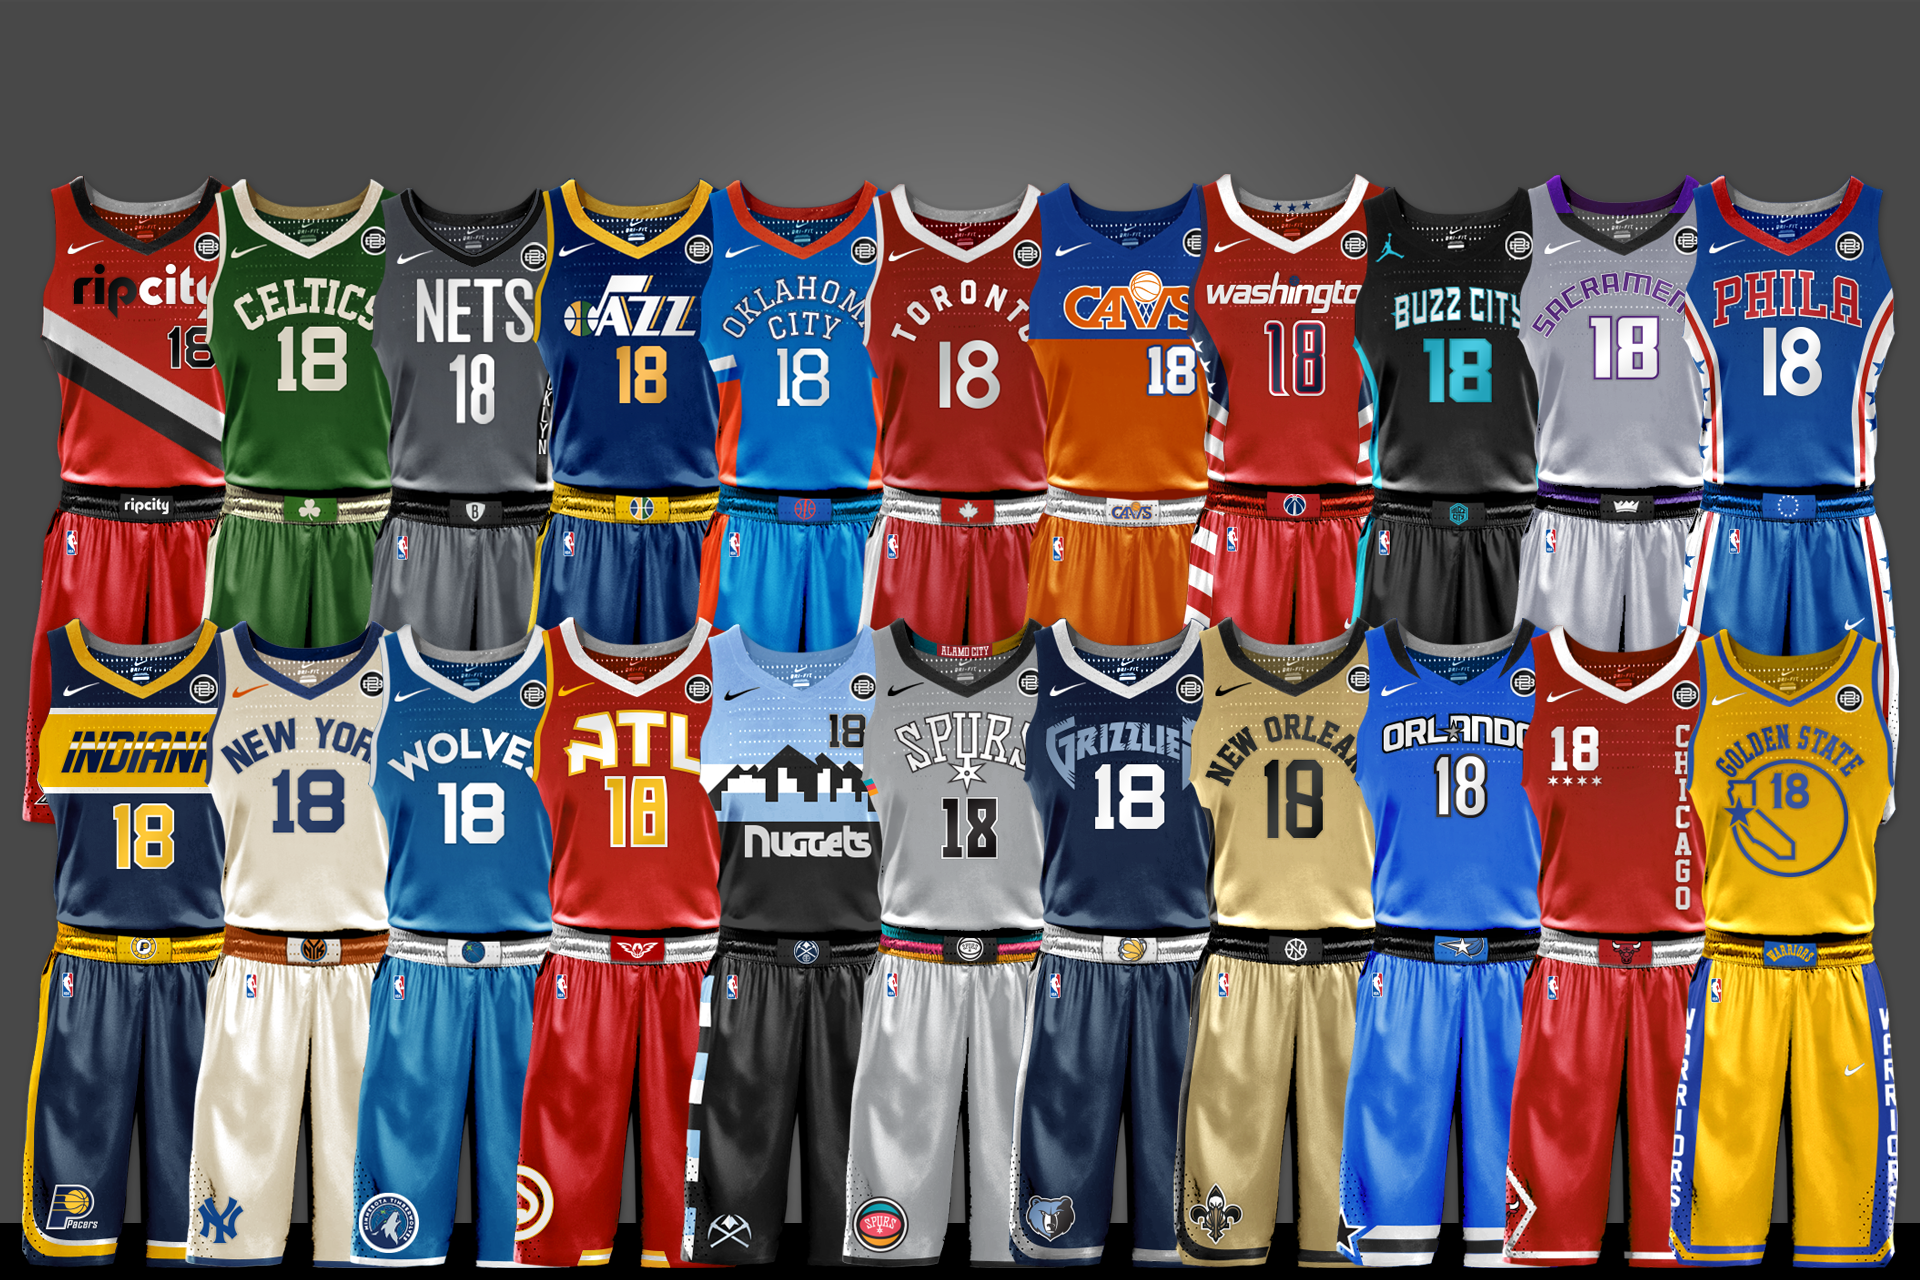 NBA Uniform Concepts